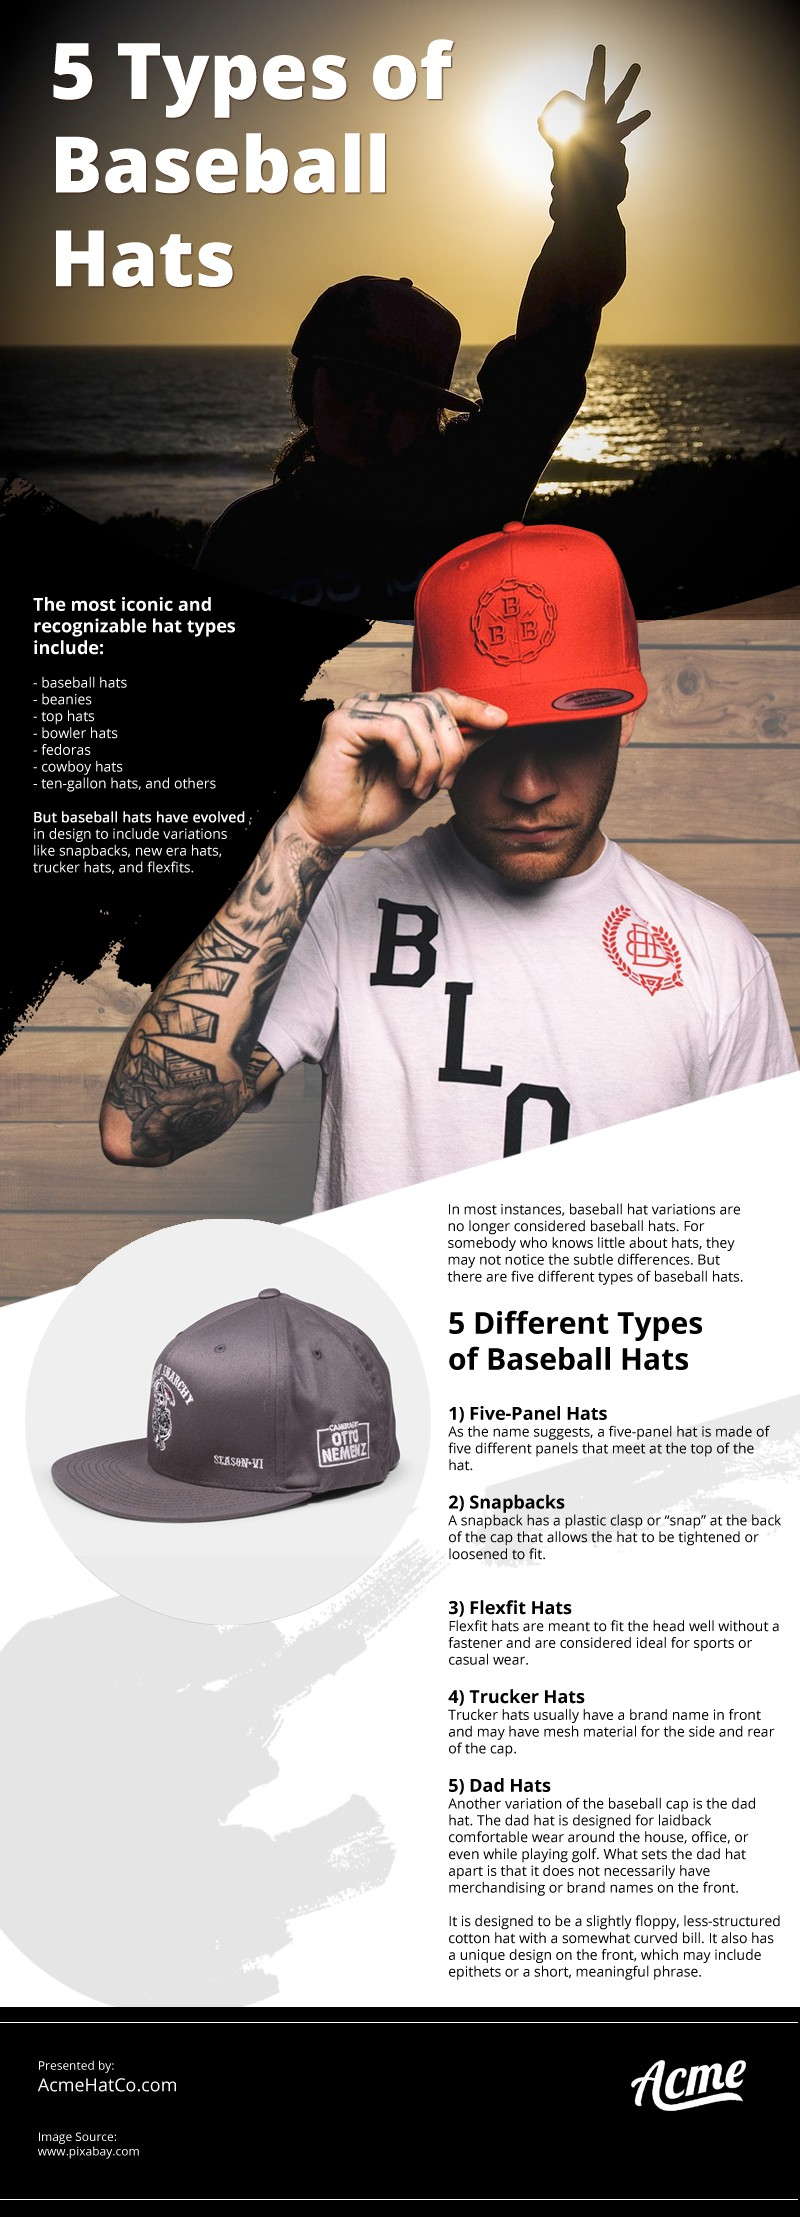 5 Types of Baseball Hats Infographic